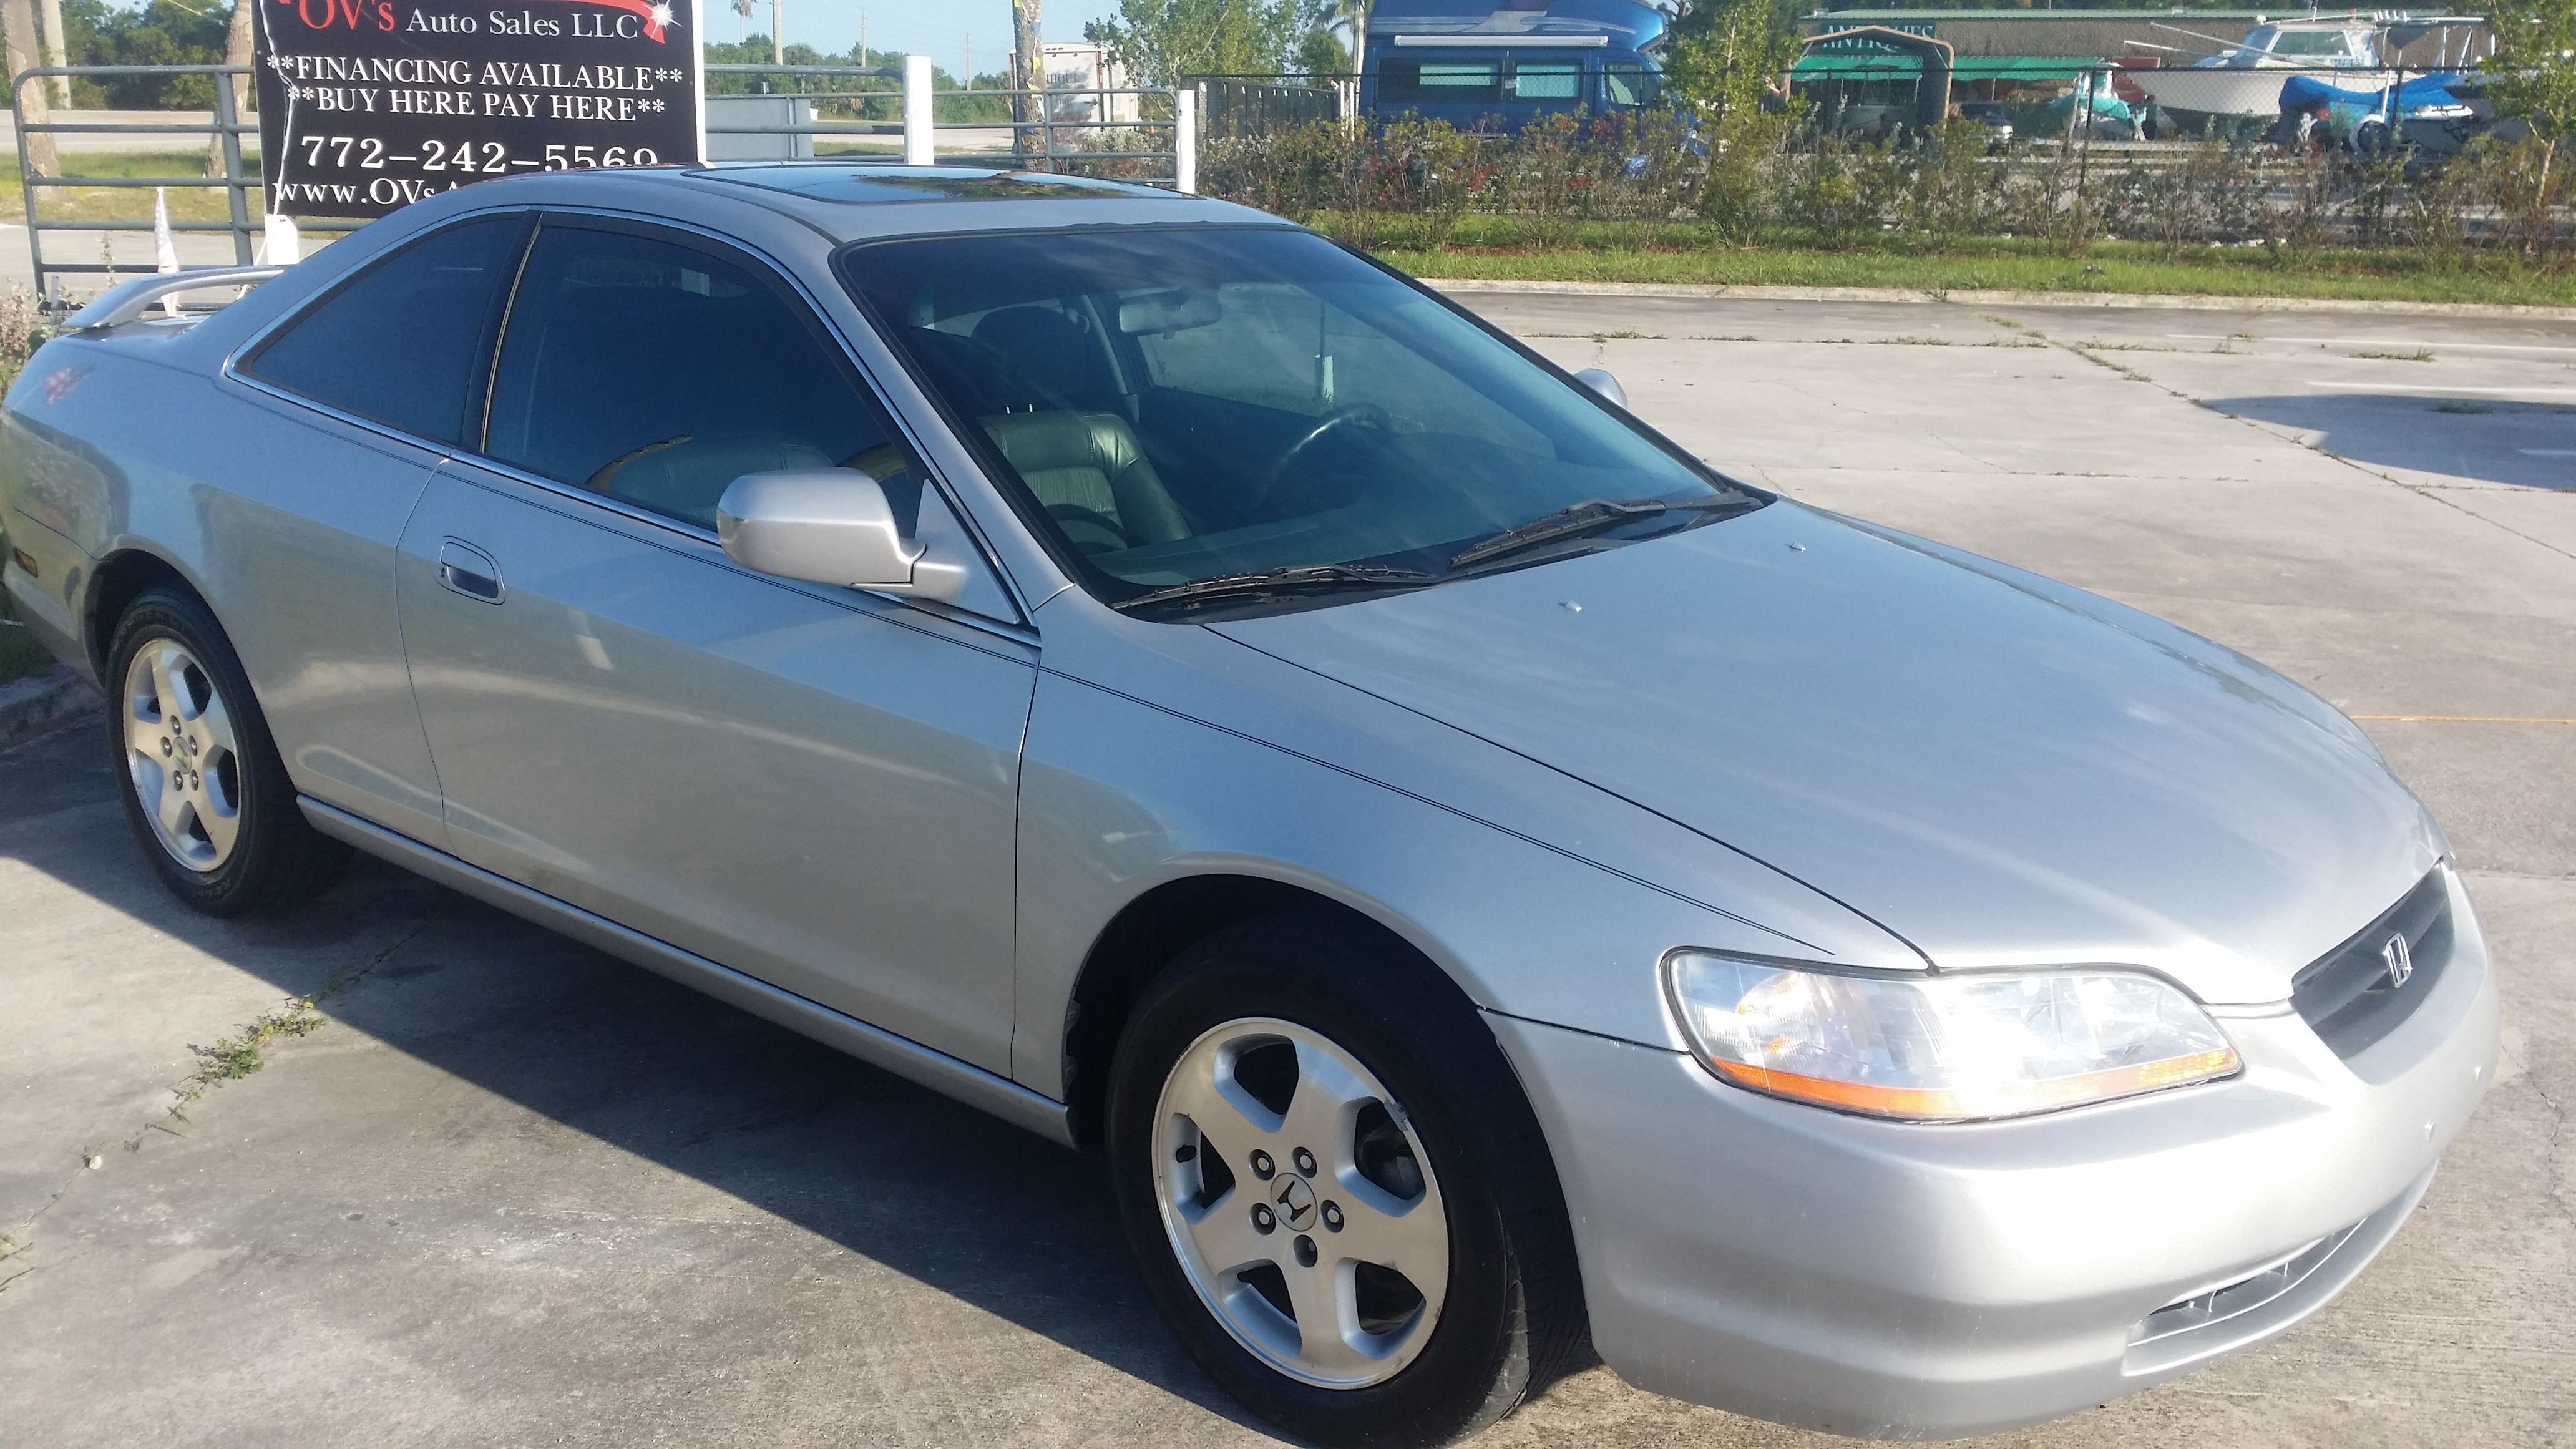 Sold 2000 Honda Accord Ex Mileage 82193 Body Style Coupe Exterior Color Silver Interior Black Fuel Economy City 18 Hwy 25 Comb 21 Mpg Engine